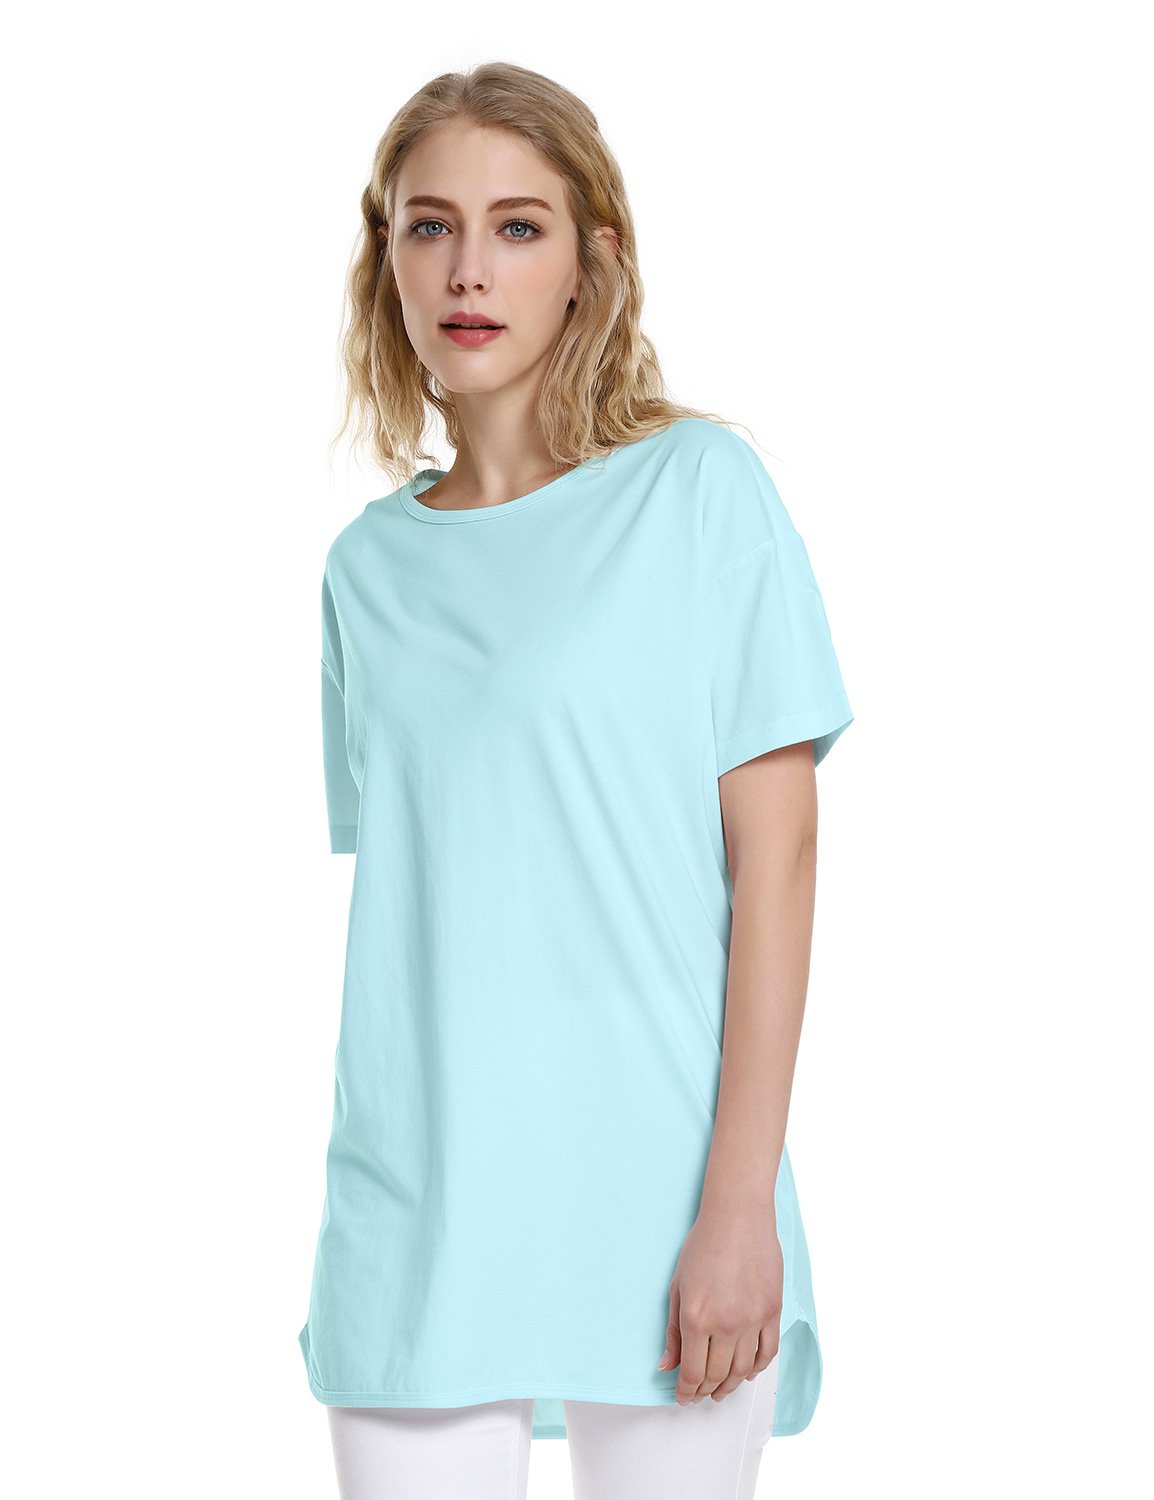 ZAN.STYLE Women's Plus Size Slub Cotton Tunic Tee Shirt Long T Shirt for Leggings Medium Style 2-Light Blue